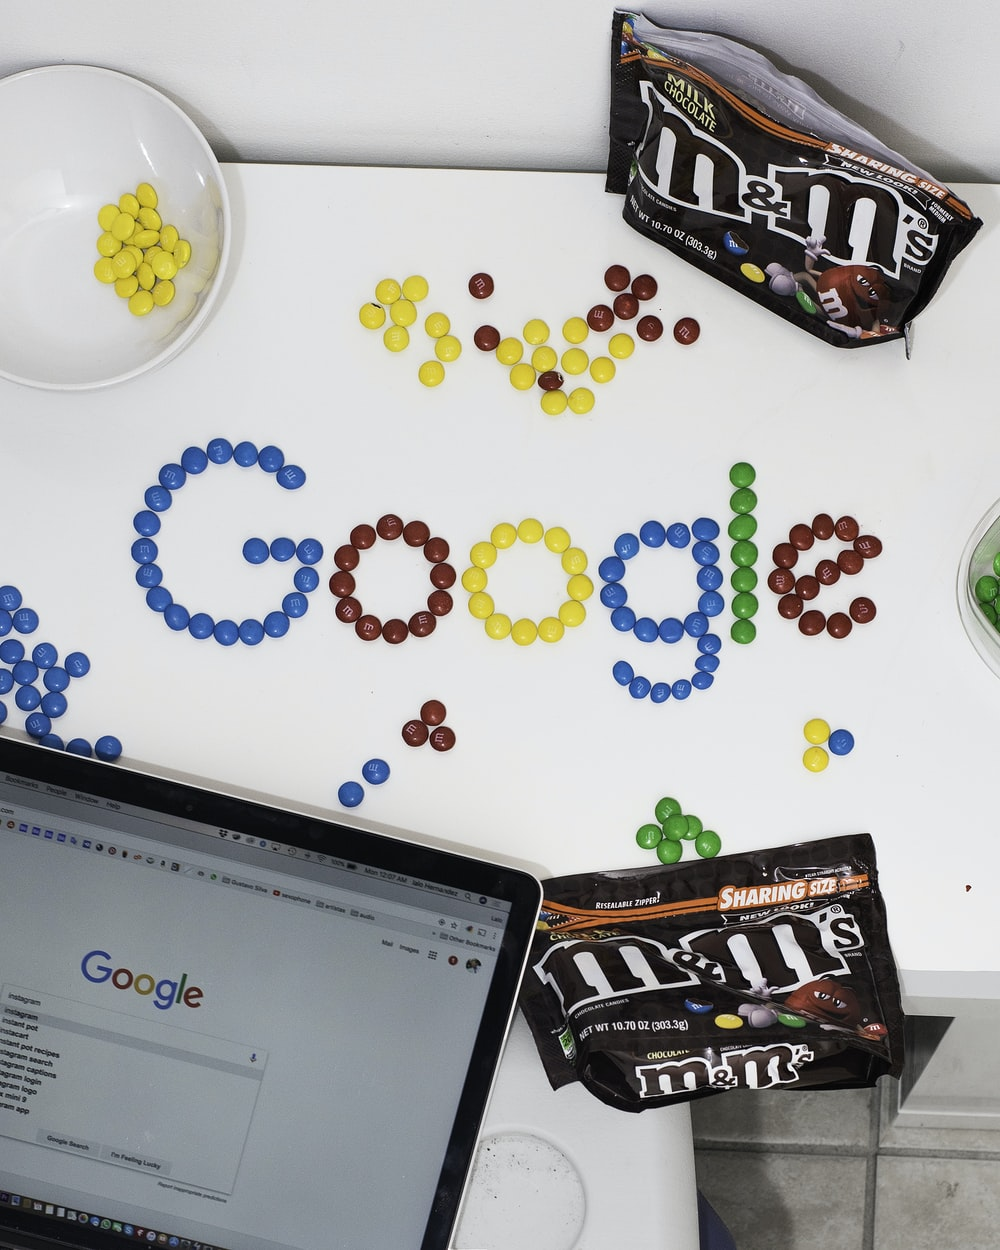 photo of M&M forming Google chocolate candies on table